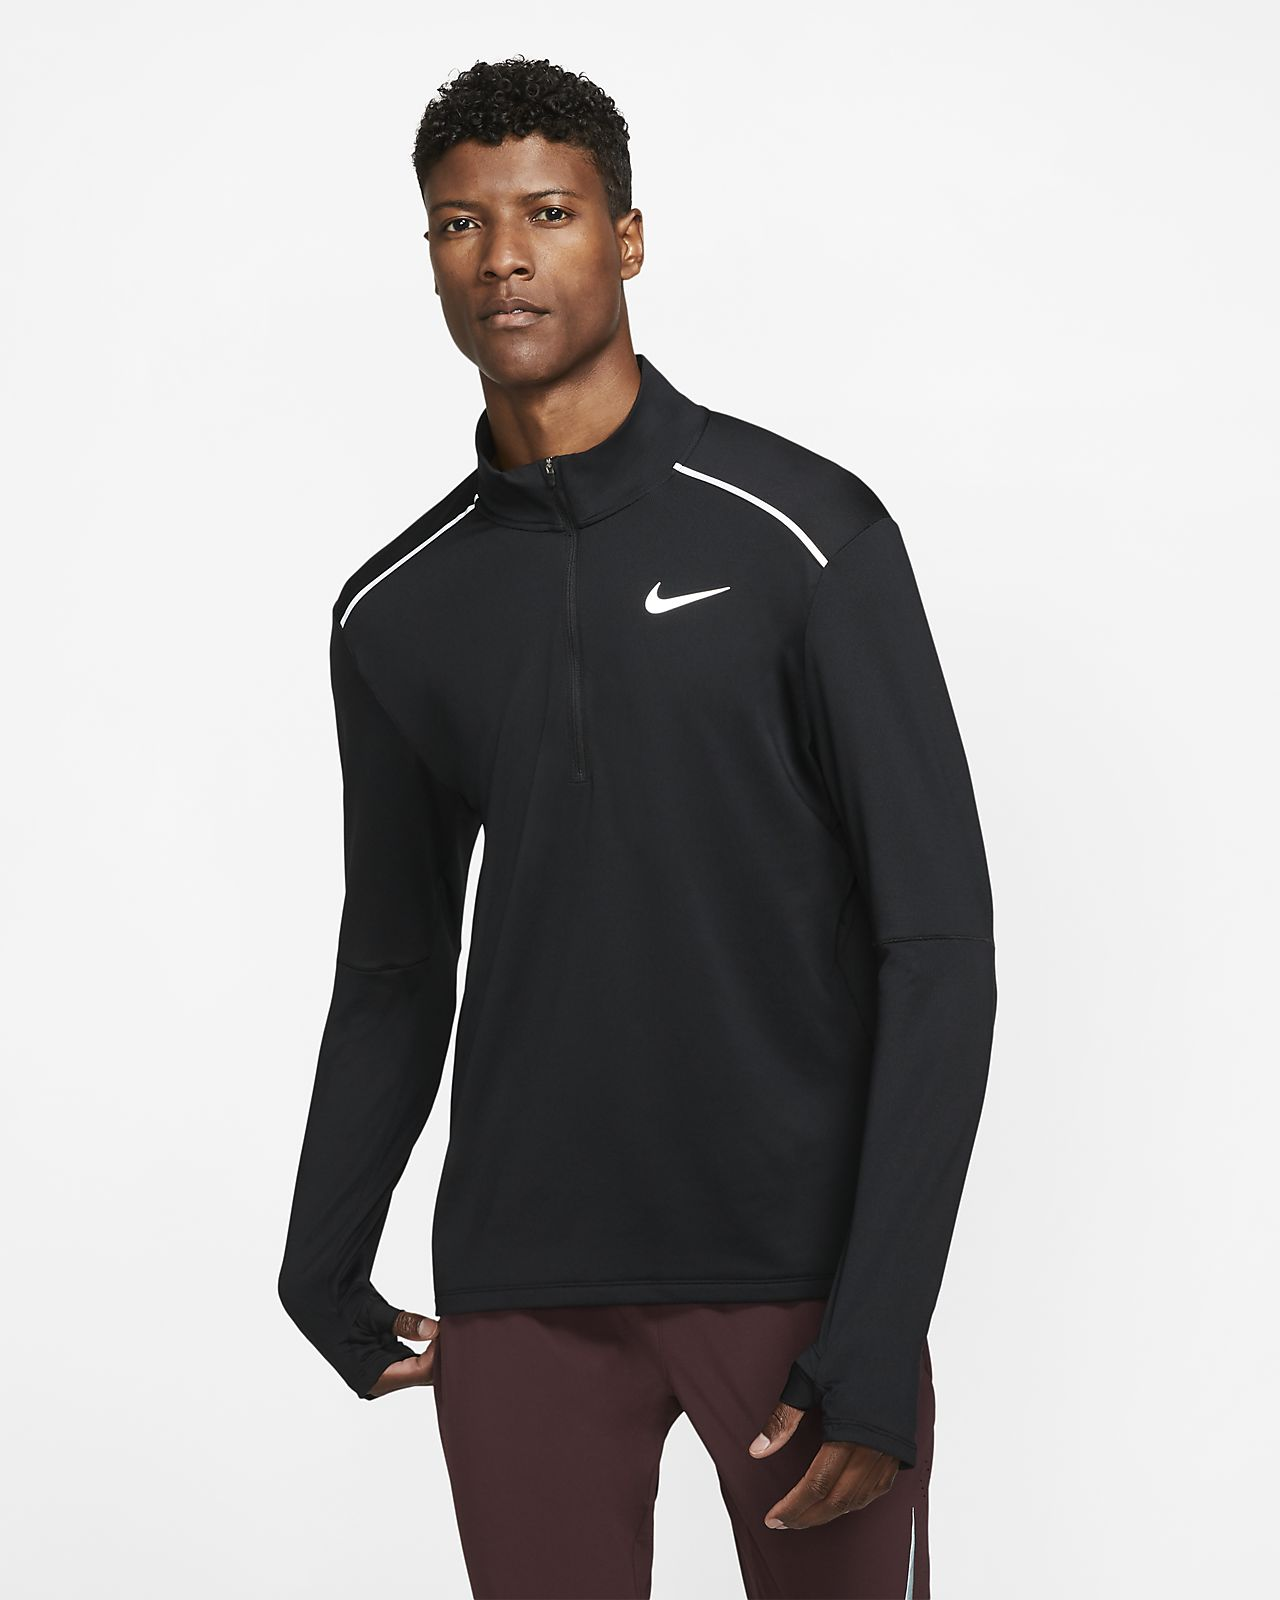 Nike 3.0 Men's 1/2-Zip Running Crew